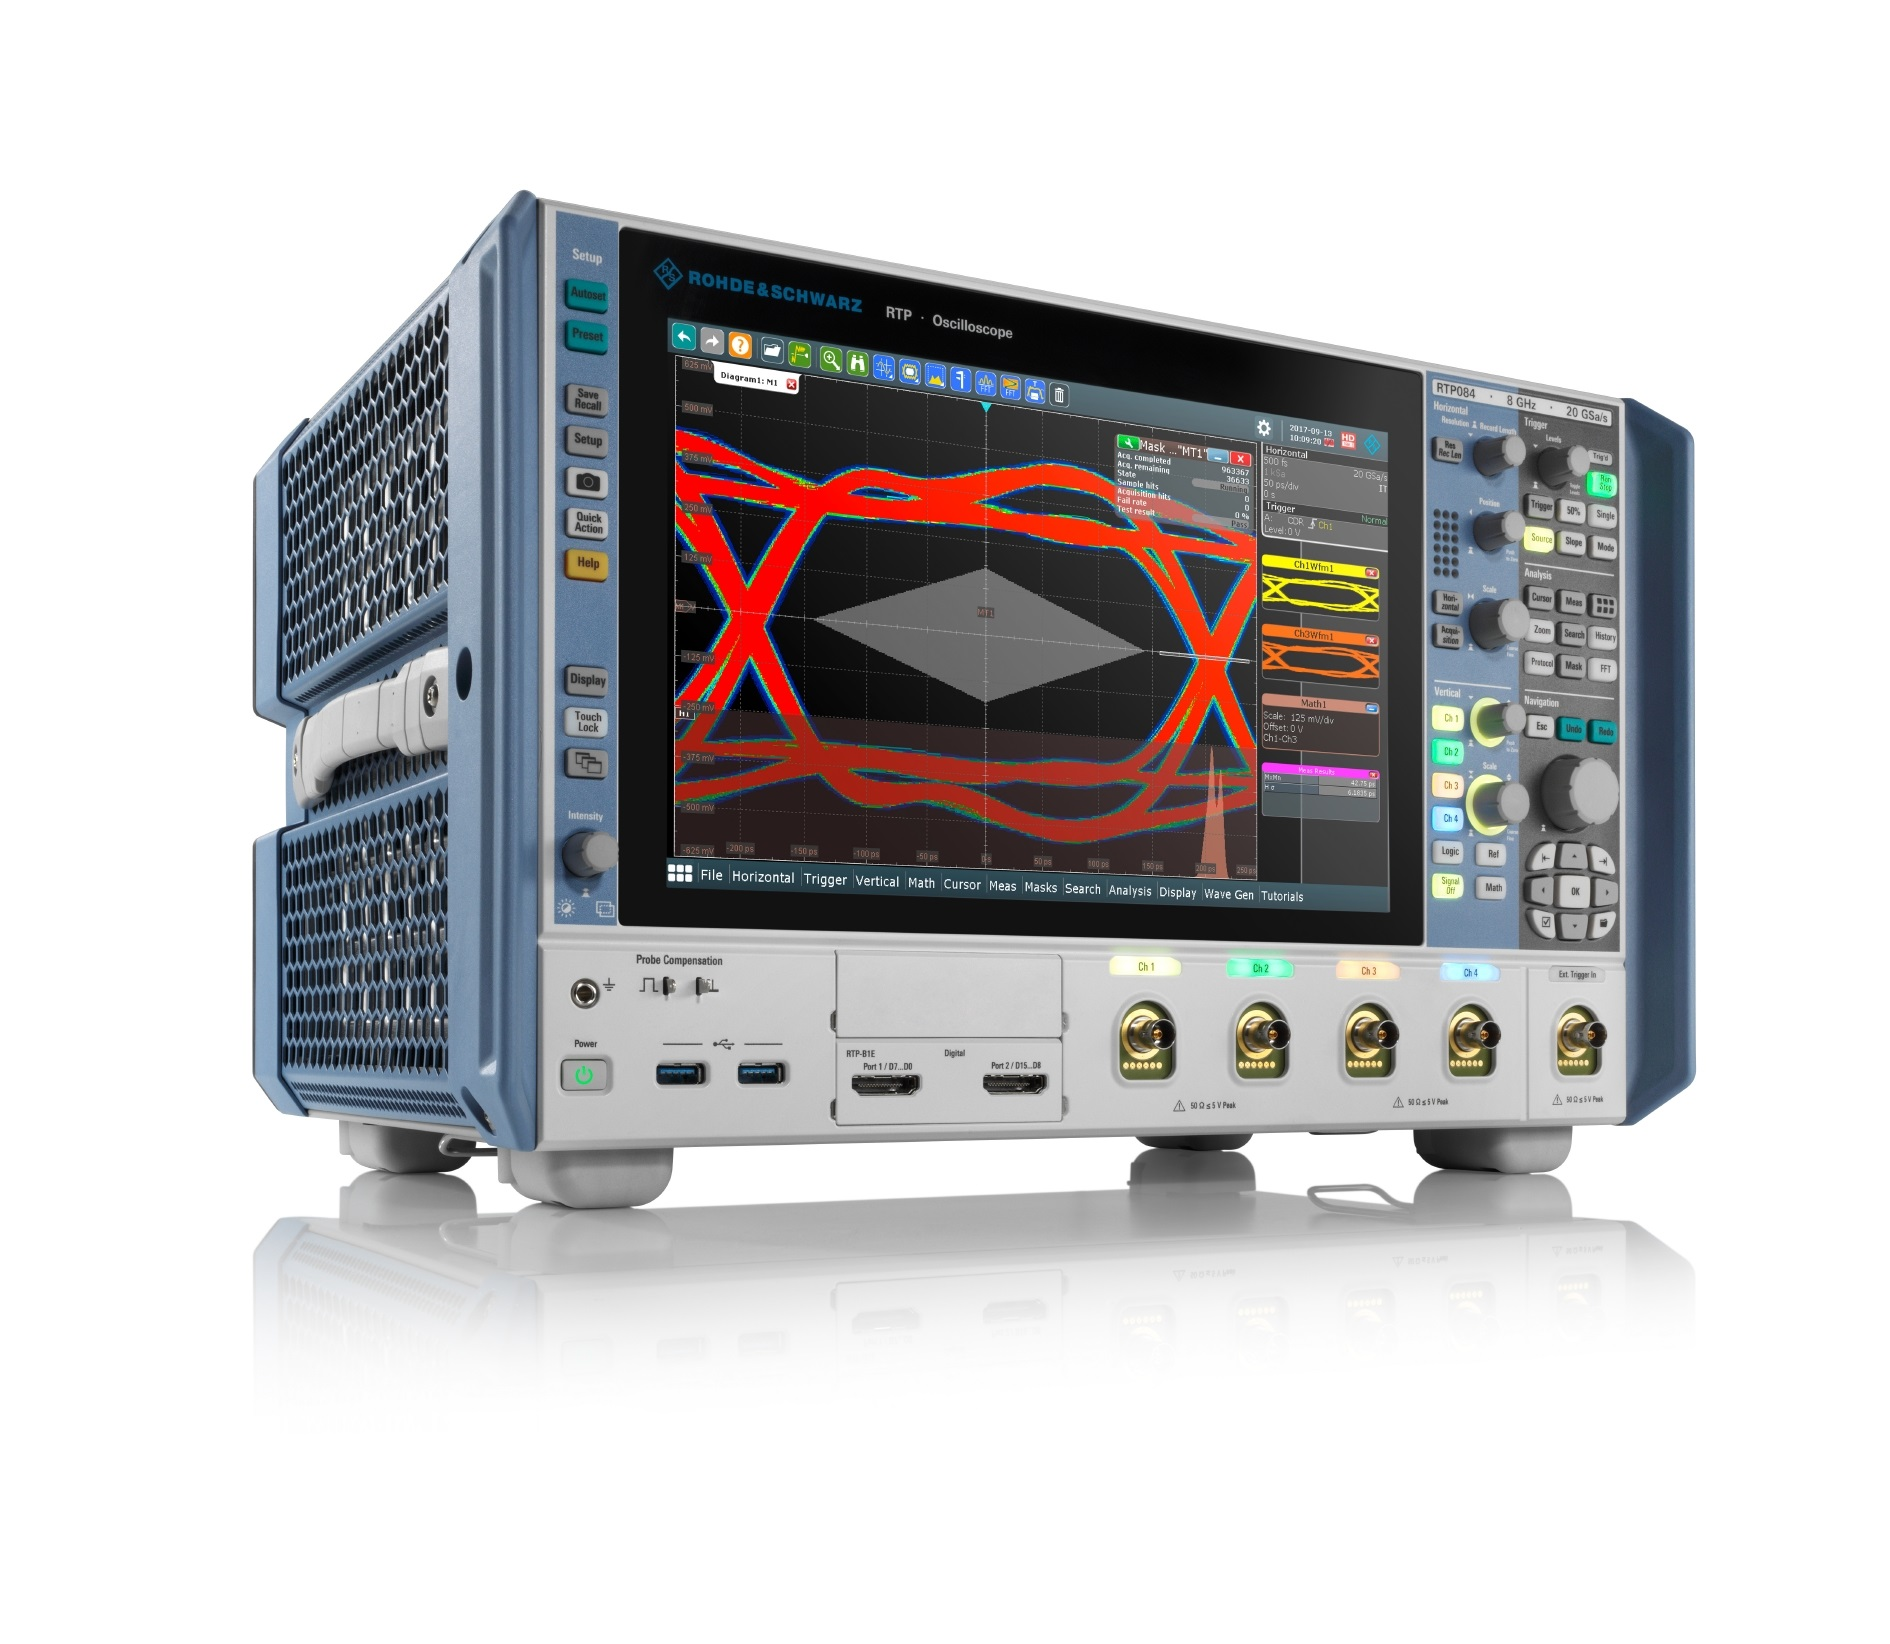 New high-performance oscilloscope from Rohde & Schwarz: innovative signal integrity, measurement speed and range of functions